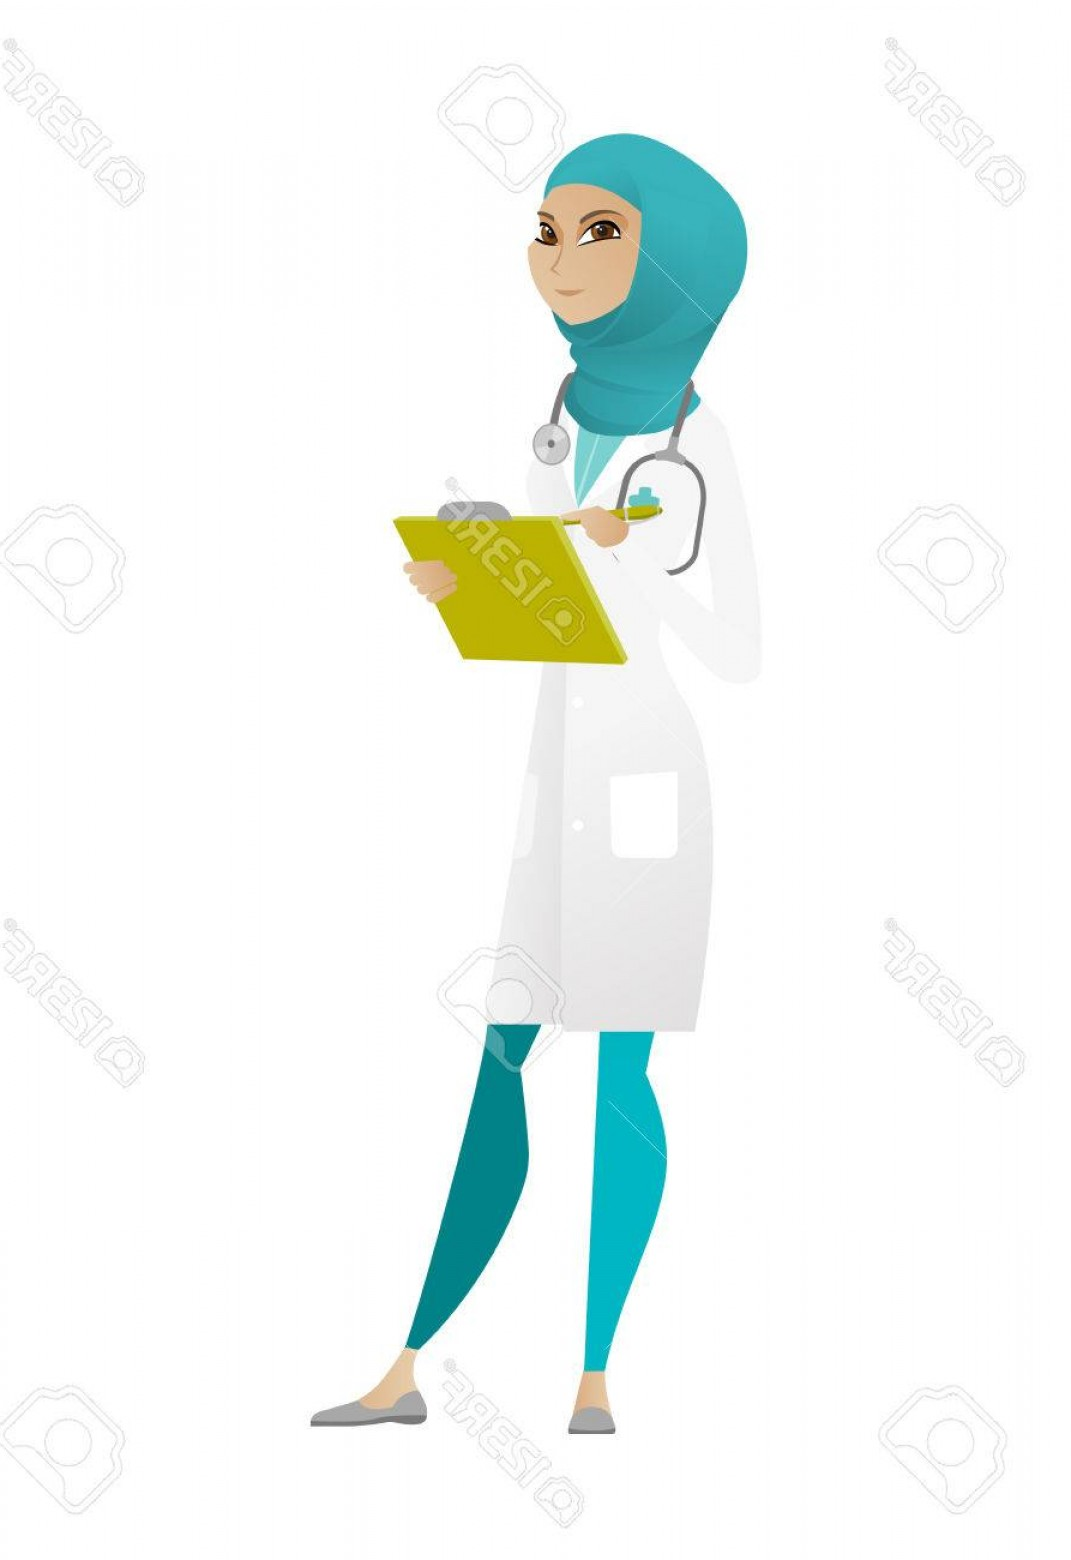 Notepad Writing Hand Vector: Photostock Vector Muslim Doctor Writing Notes In A Notepad Doctor Writing Results Of Medical Examination Doctor Writin